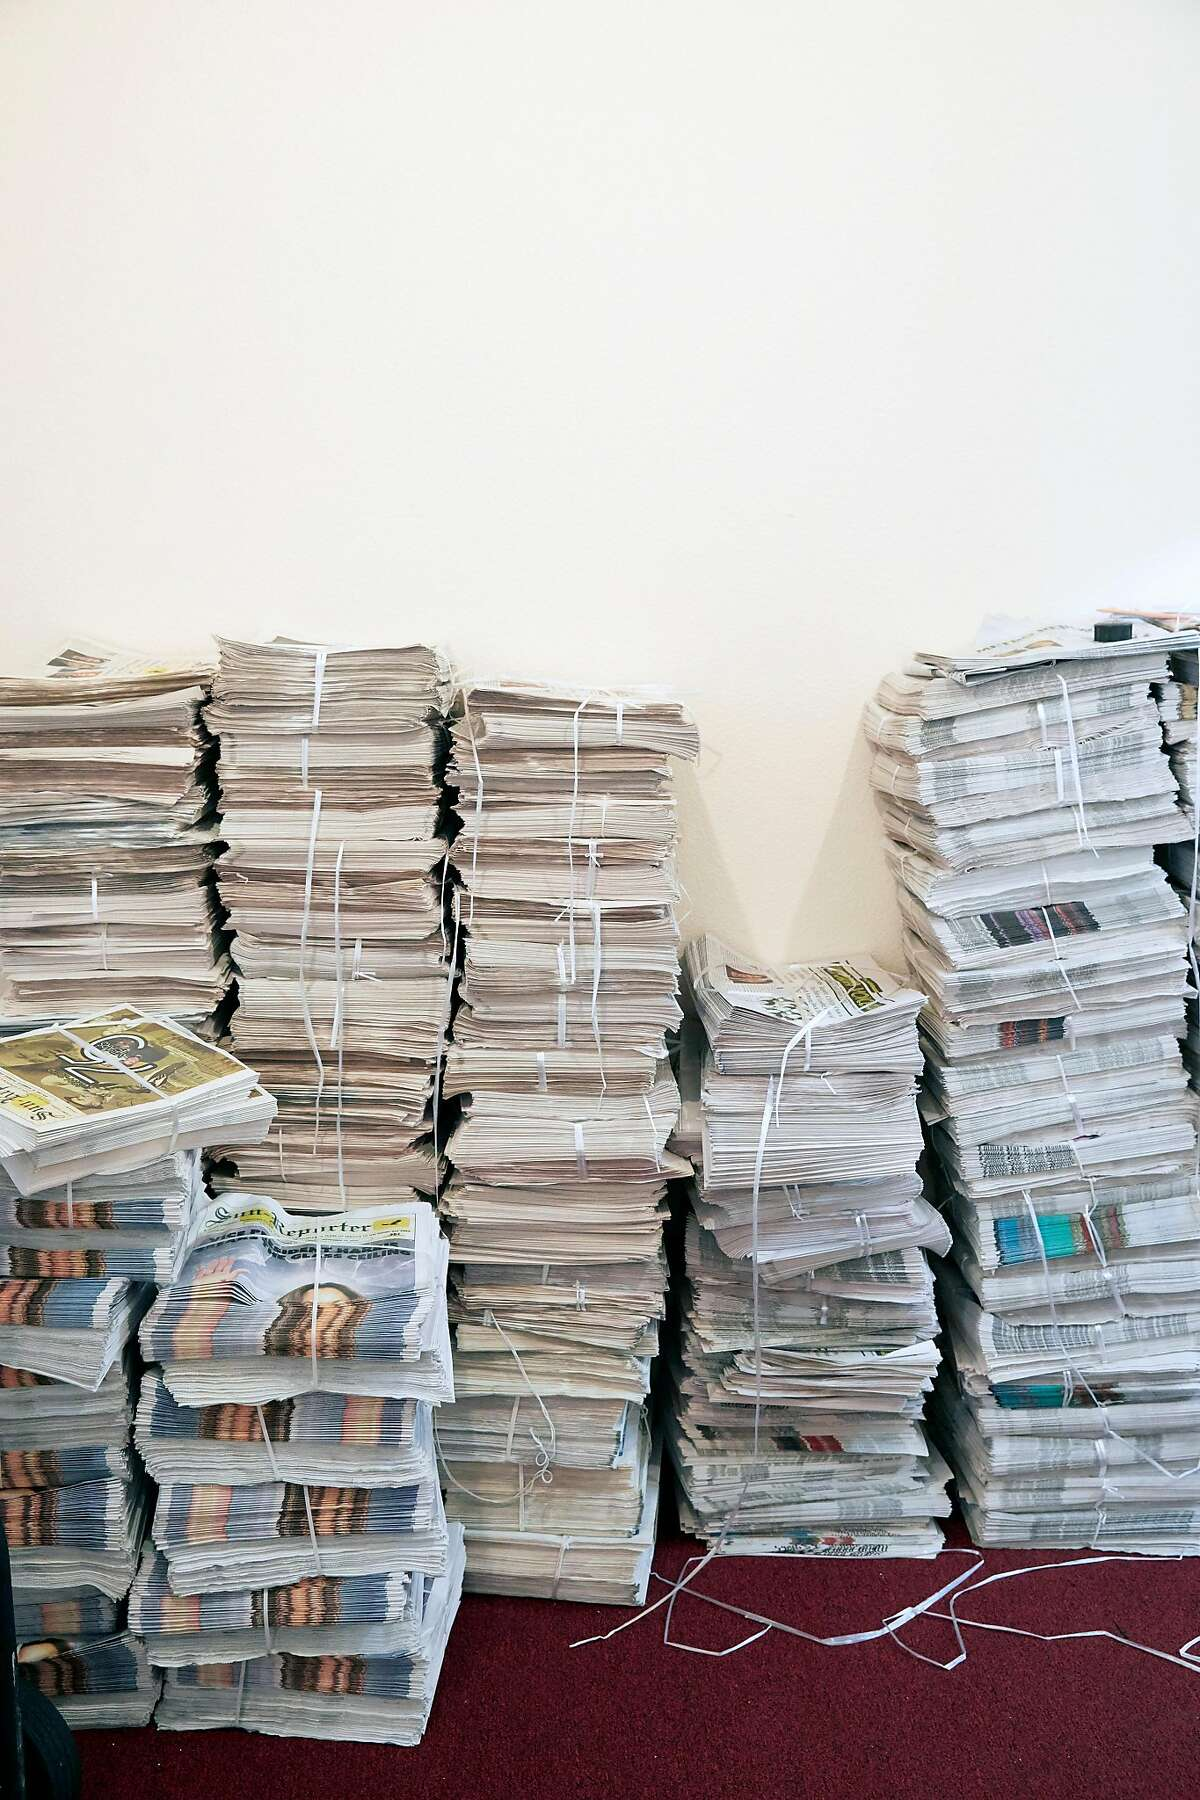 Stacks of the Sun-Reporter, San Francisco's oldest Black newspaper. It was founded in 1944 and has published weekly ever since. Readers can find the newspapaer at Bay Area newsstands and inside local Black churches and businesses, or have it delivered to their homes.